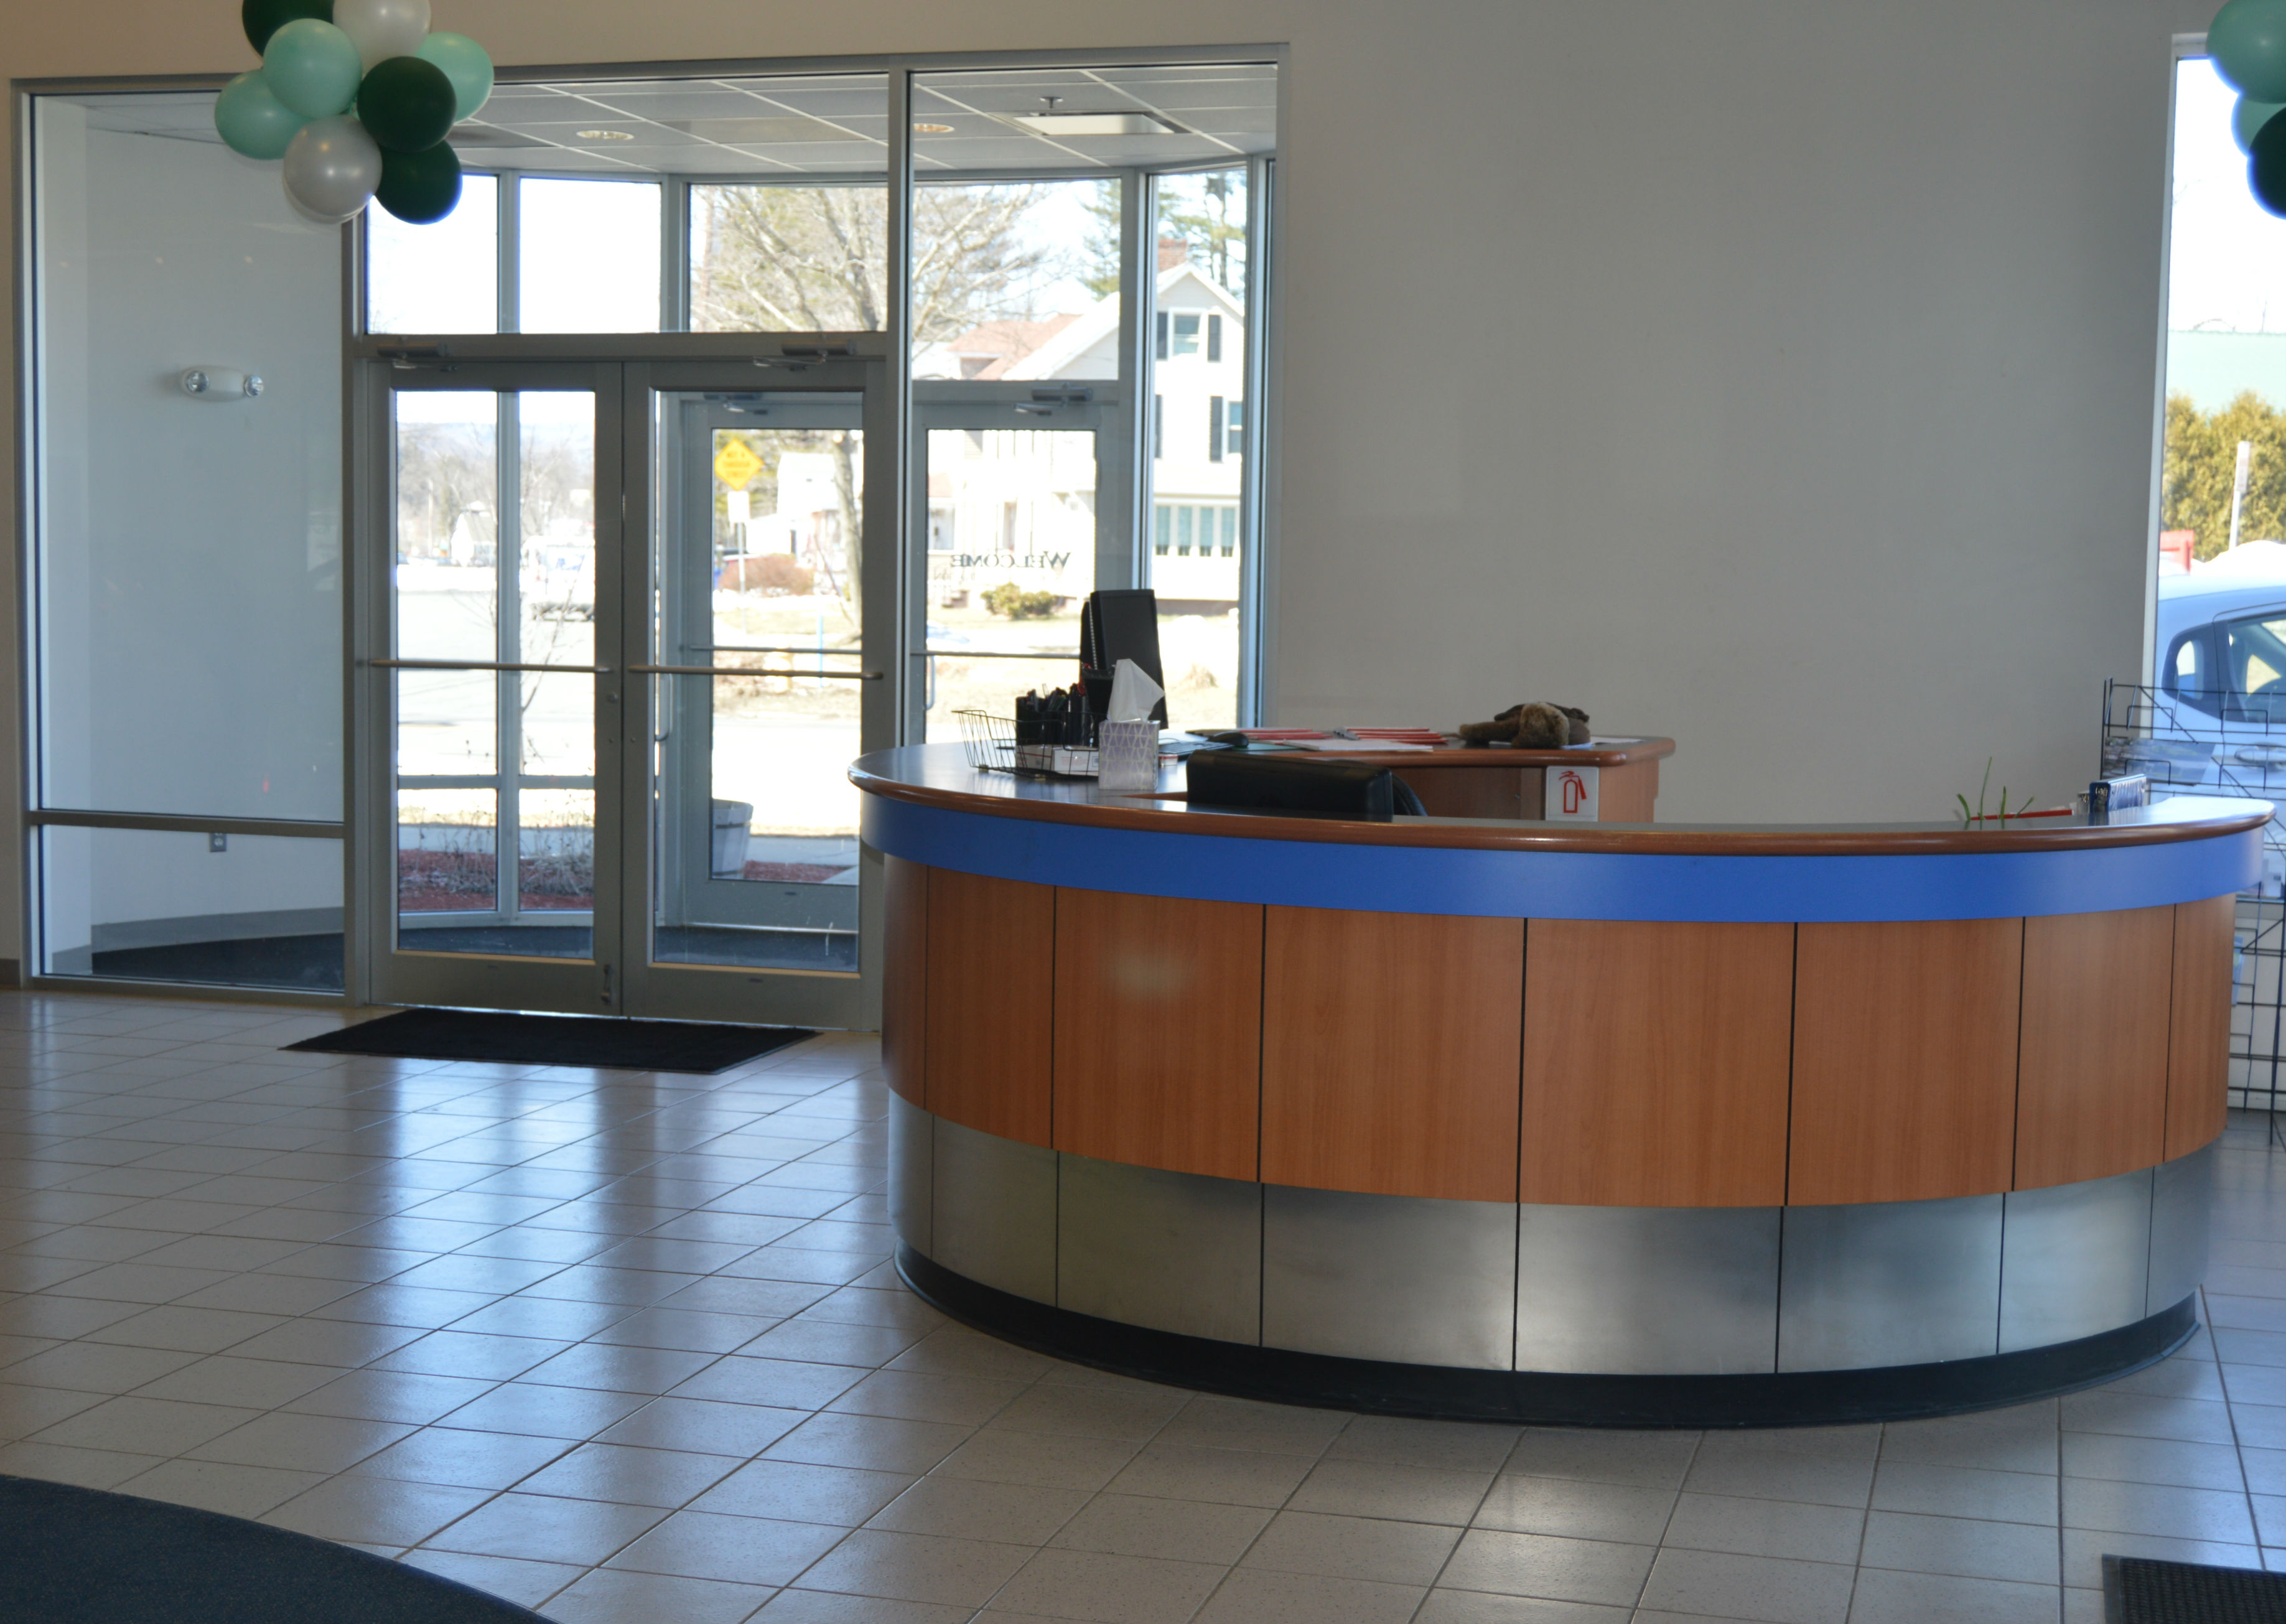 Lundgren Honda Of Greenfield 409 Federal St. Greenfield, MA Auto Repair    MapQuest